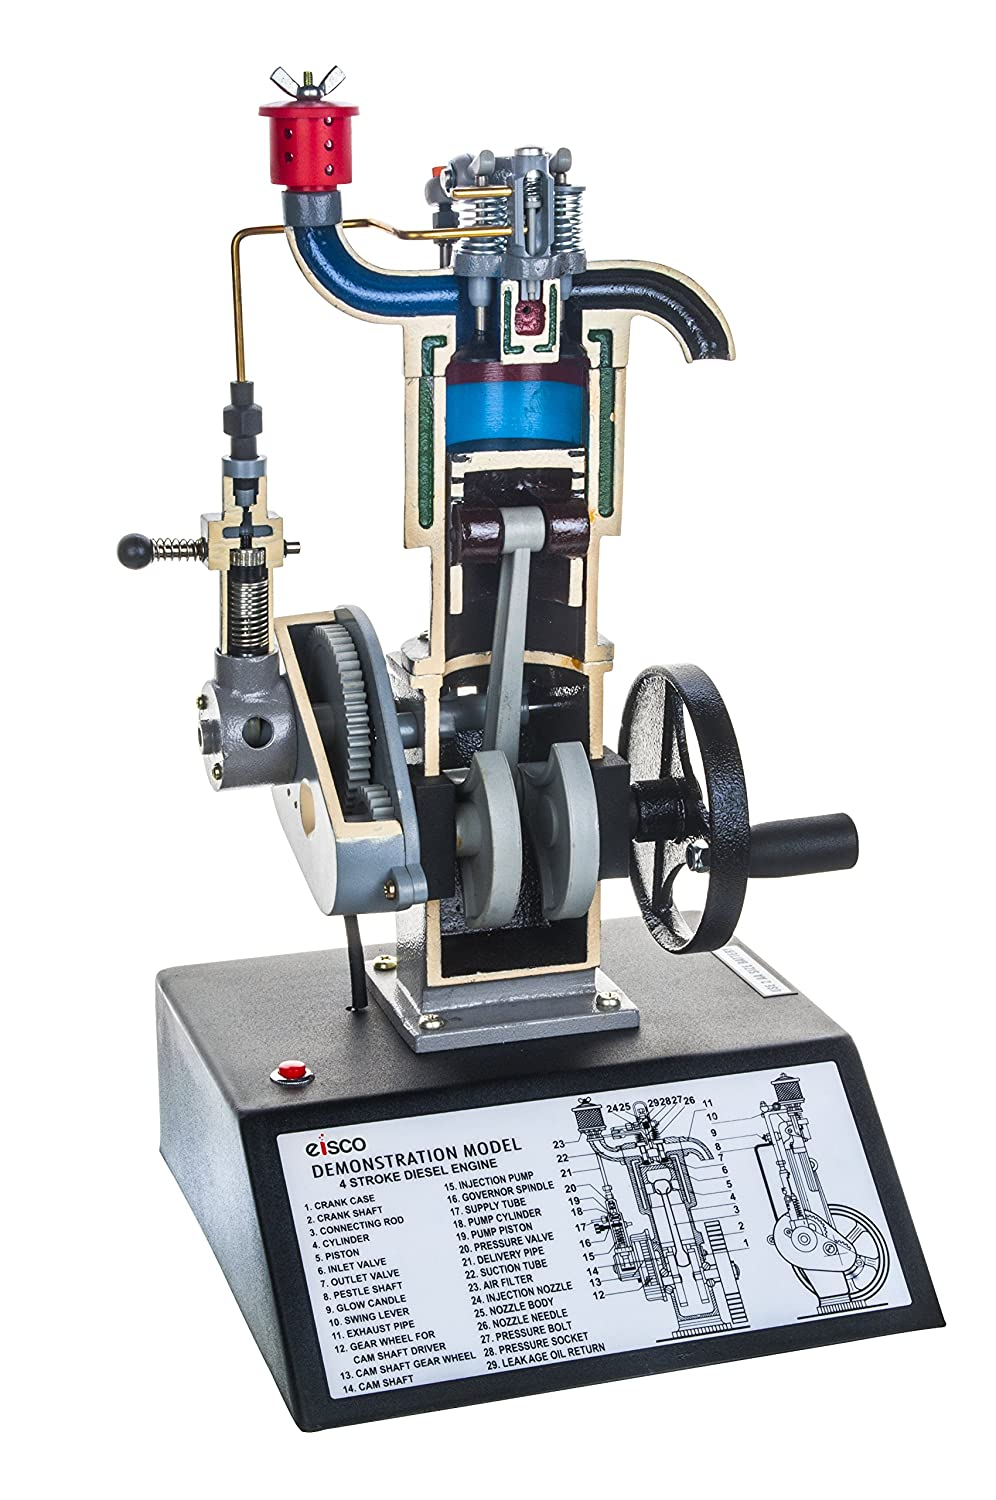 """4 Stroke Diesel Hand Crank Model with Actuating Movable Parts to Demonstrate Engine Basics - 16"""" Tall - Eisco Labs"""